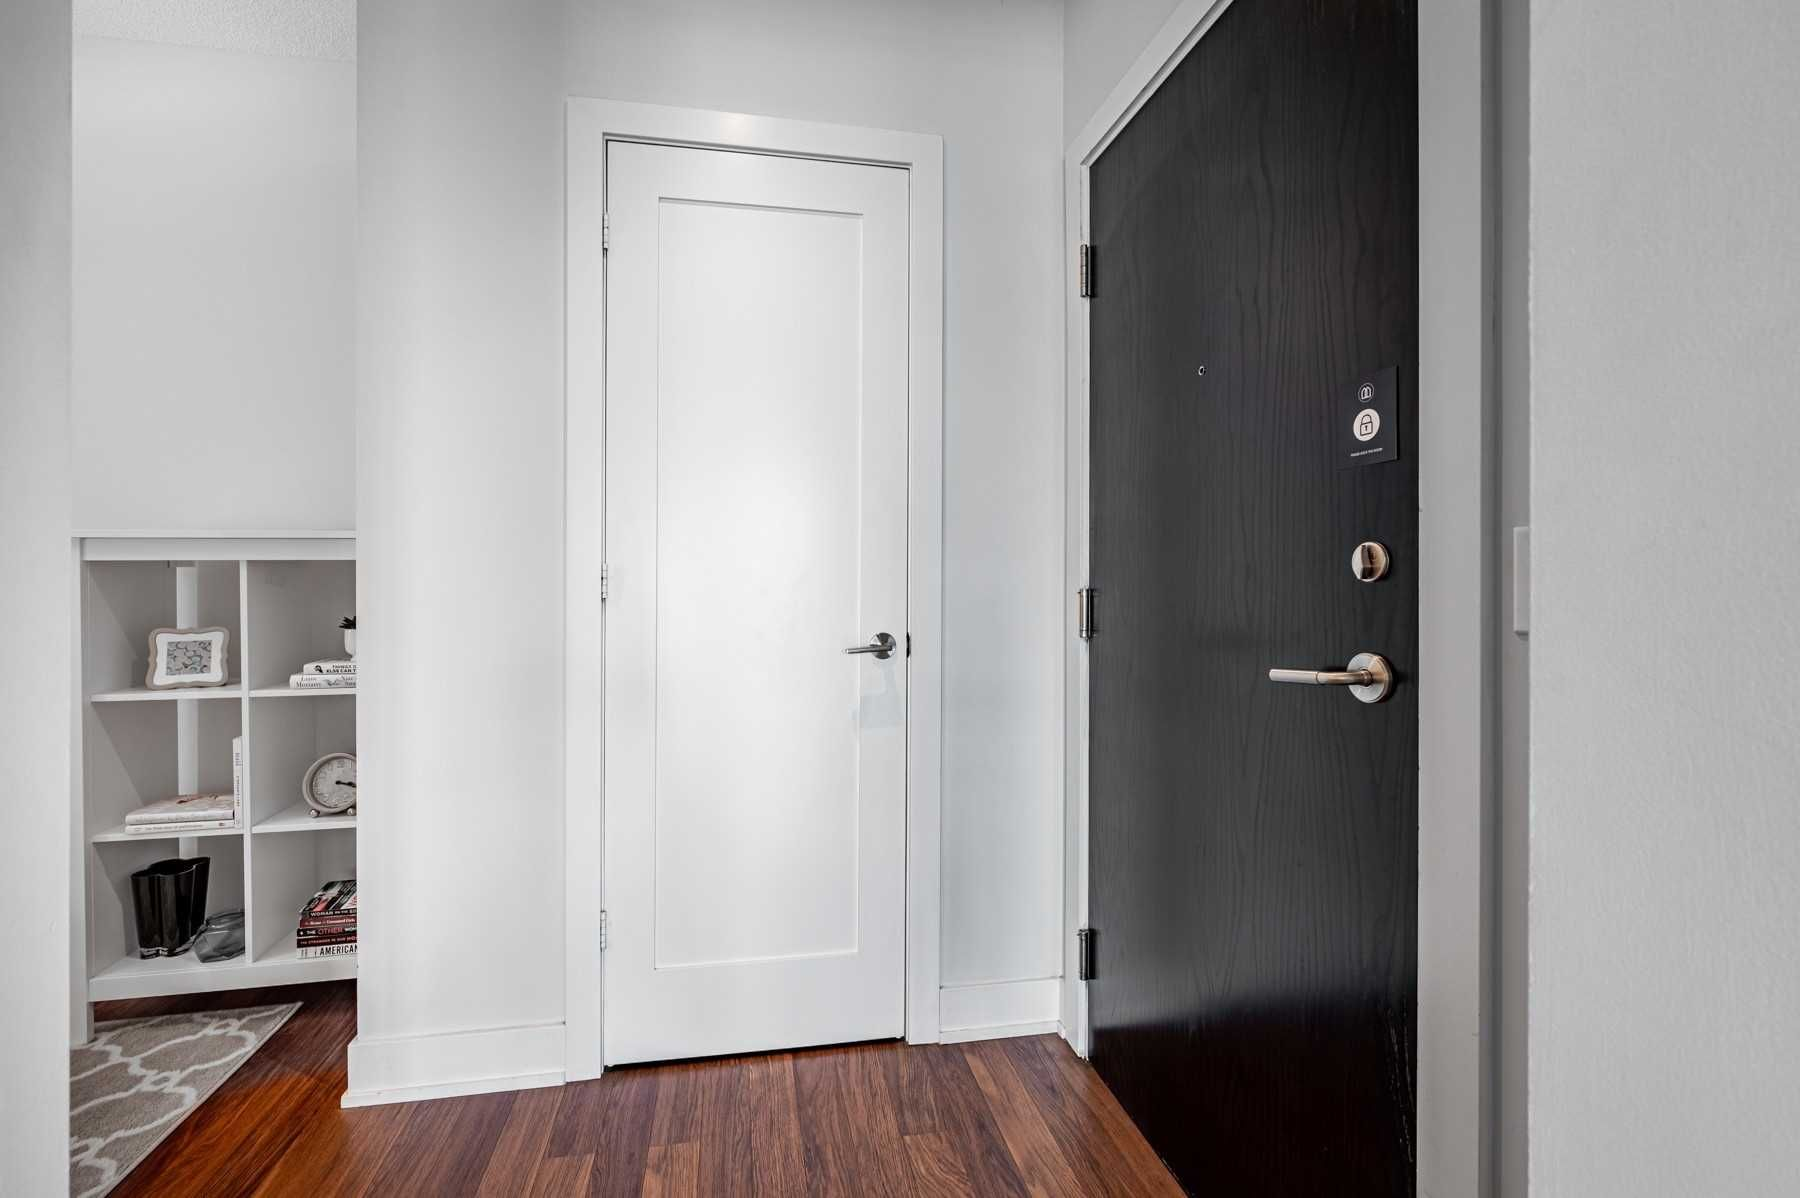 120 Homewood Ave, unit 1002 for sale in Toronto - image #2